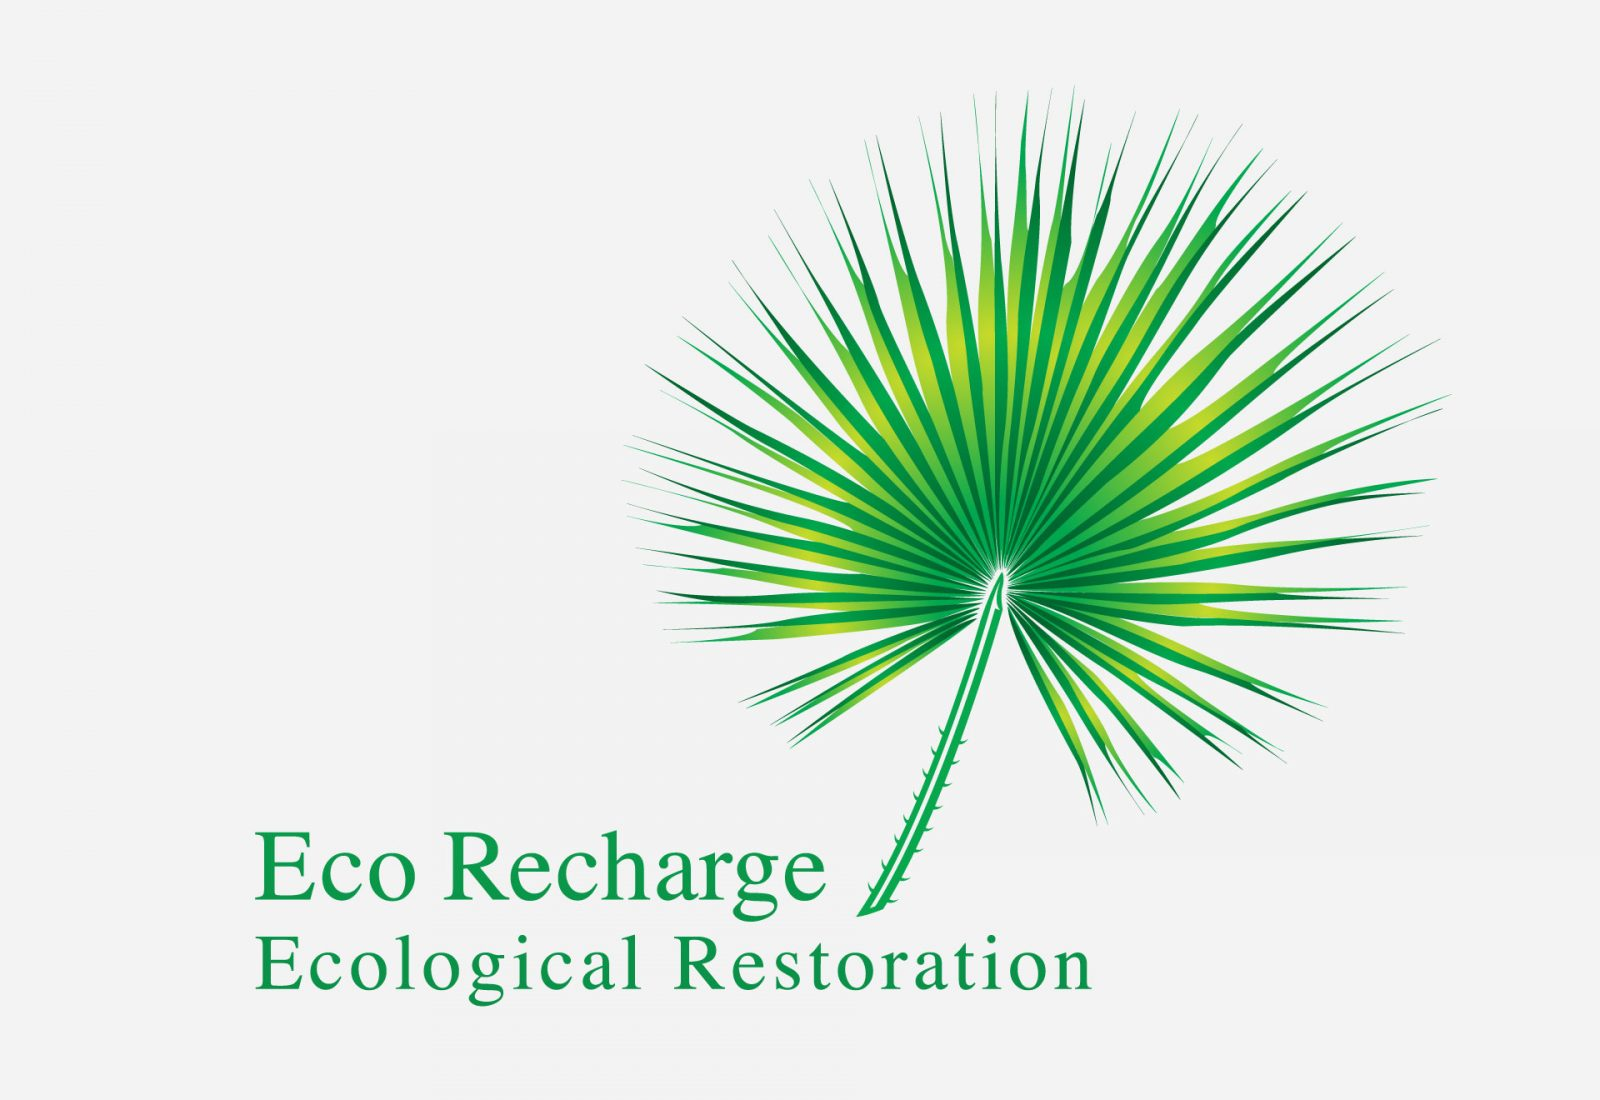 Logo design and branding for Eco Recharge